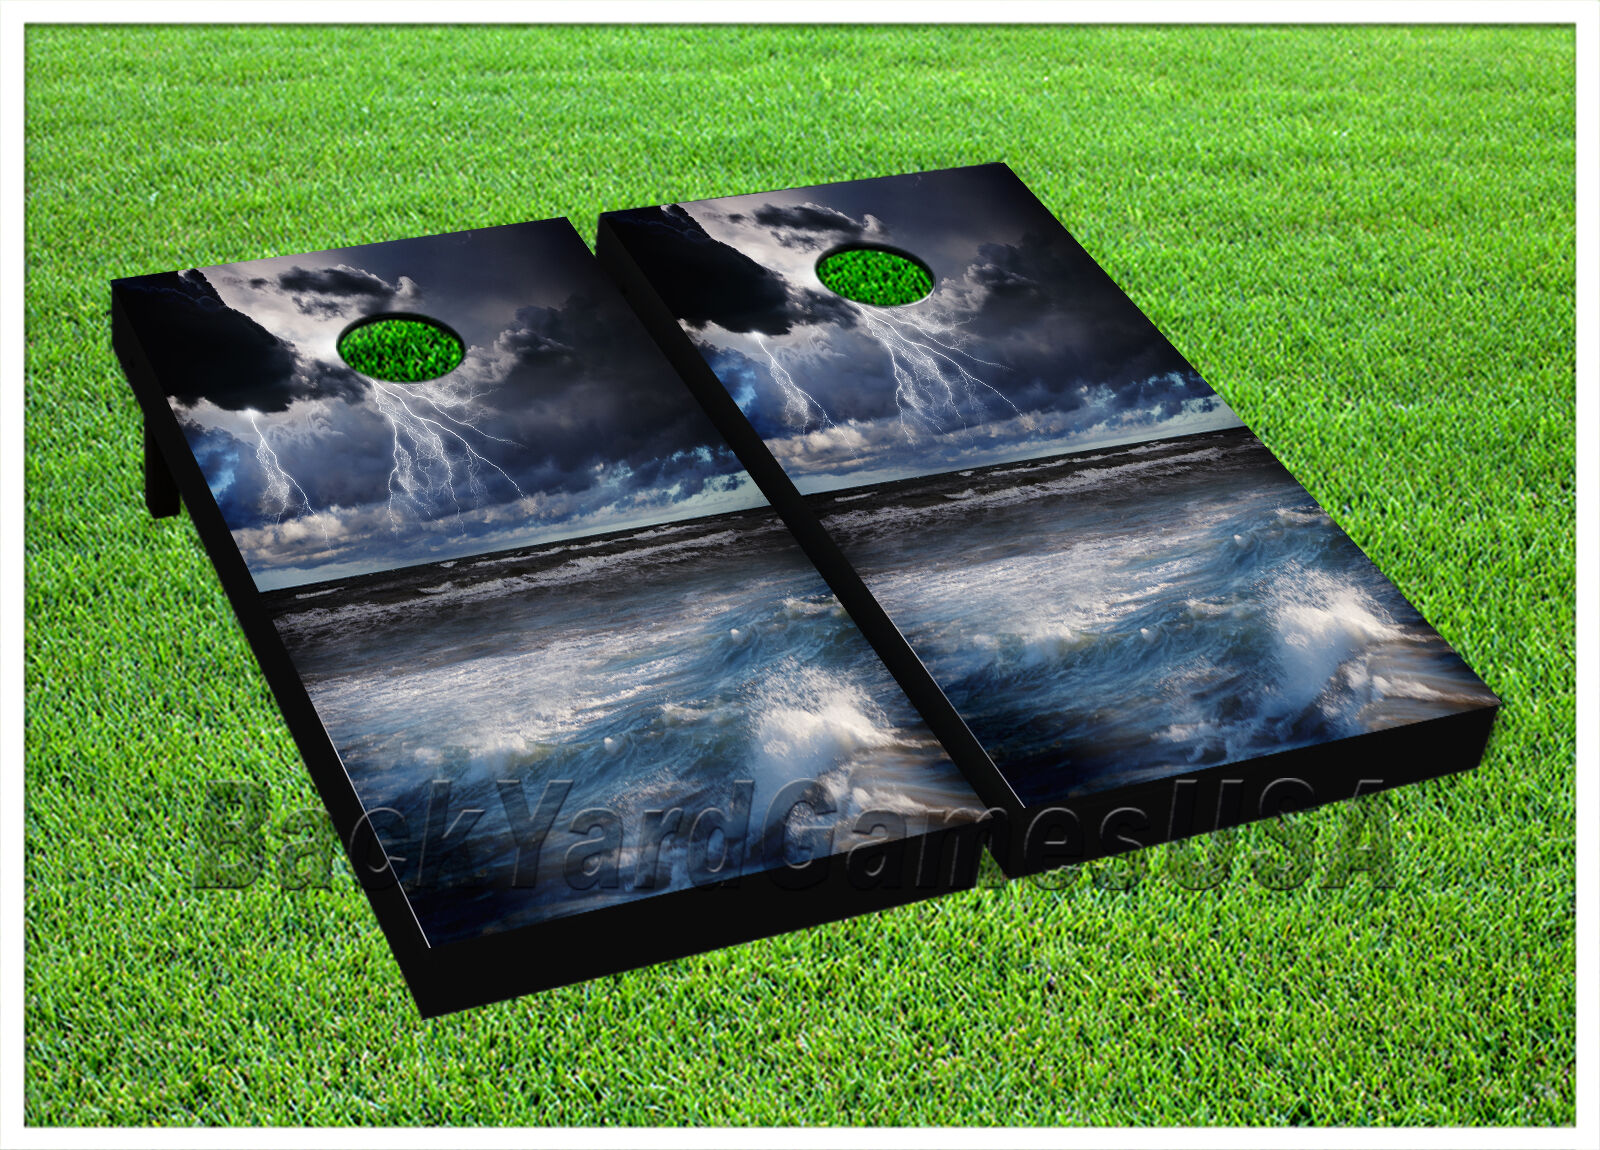 CORNHOLE BEANBAG TOSS GAME w Bags  Game Boards Storm Lighting Ocean Sea Set 962  for wholesale